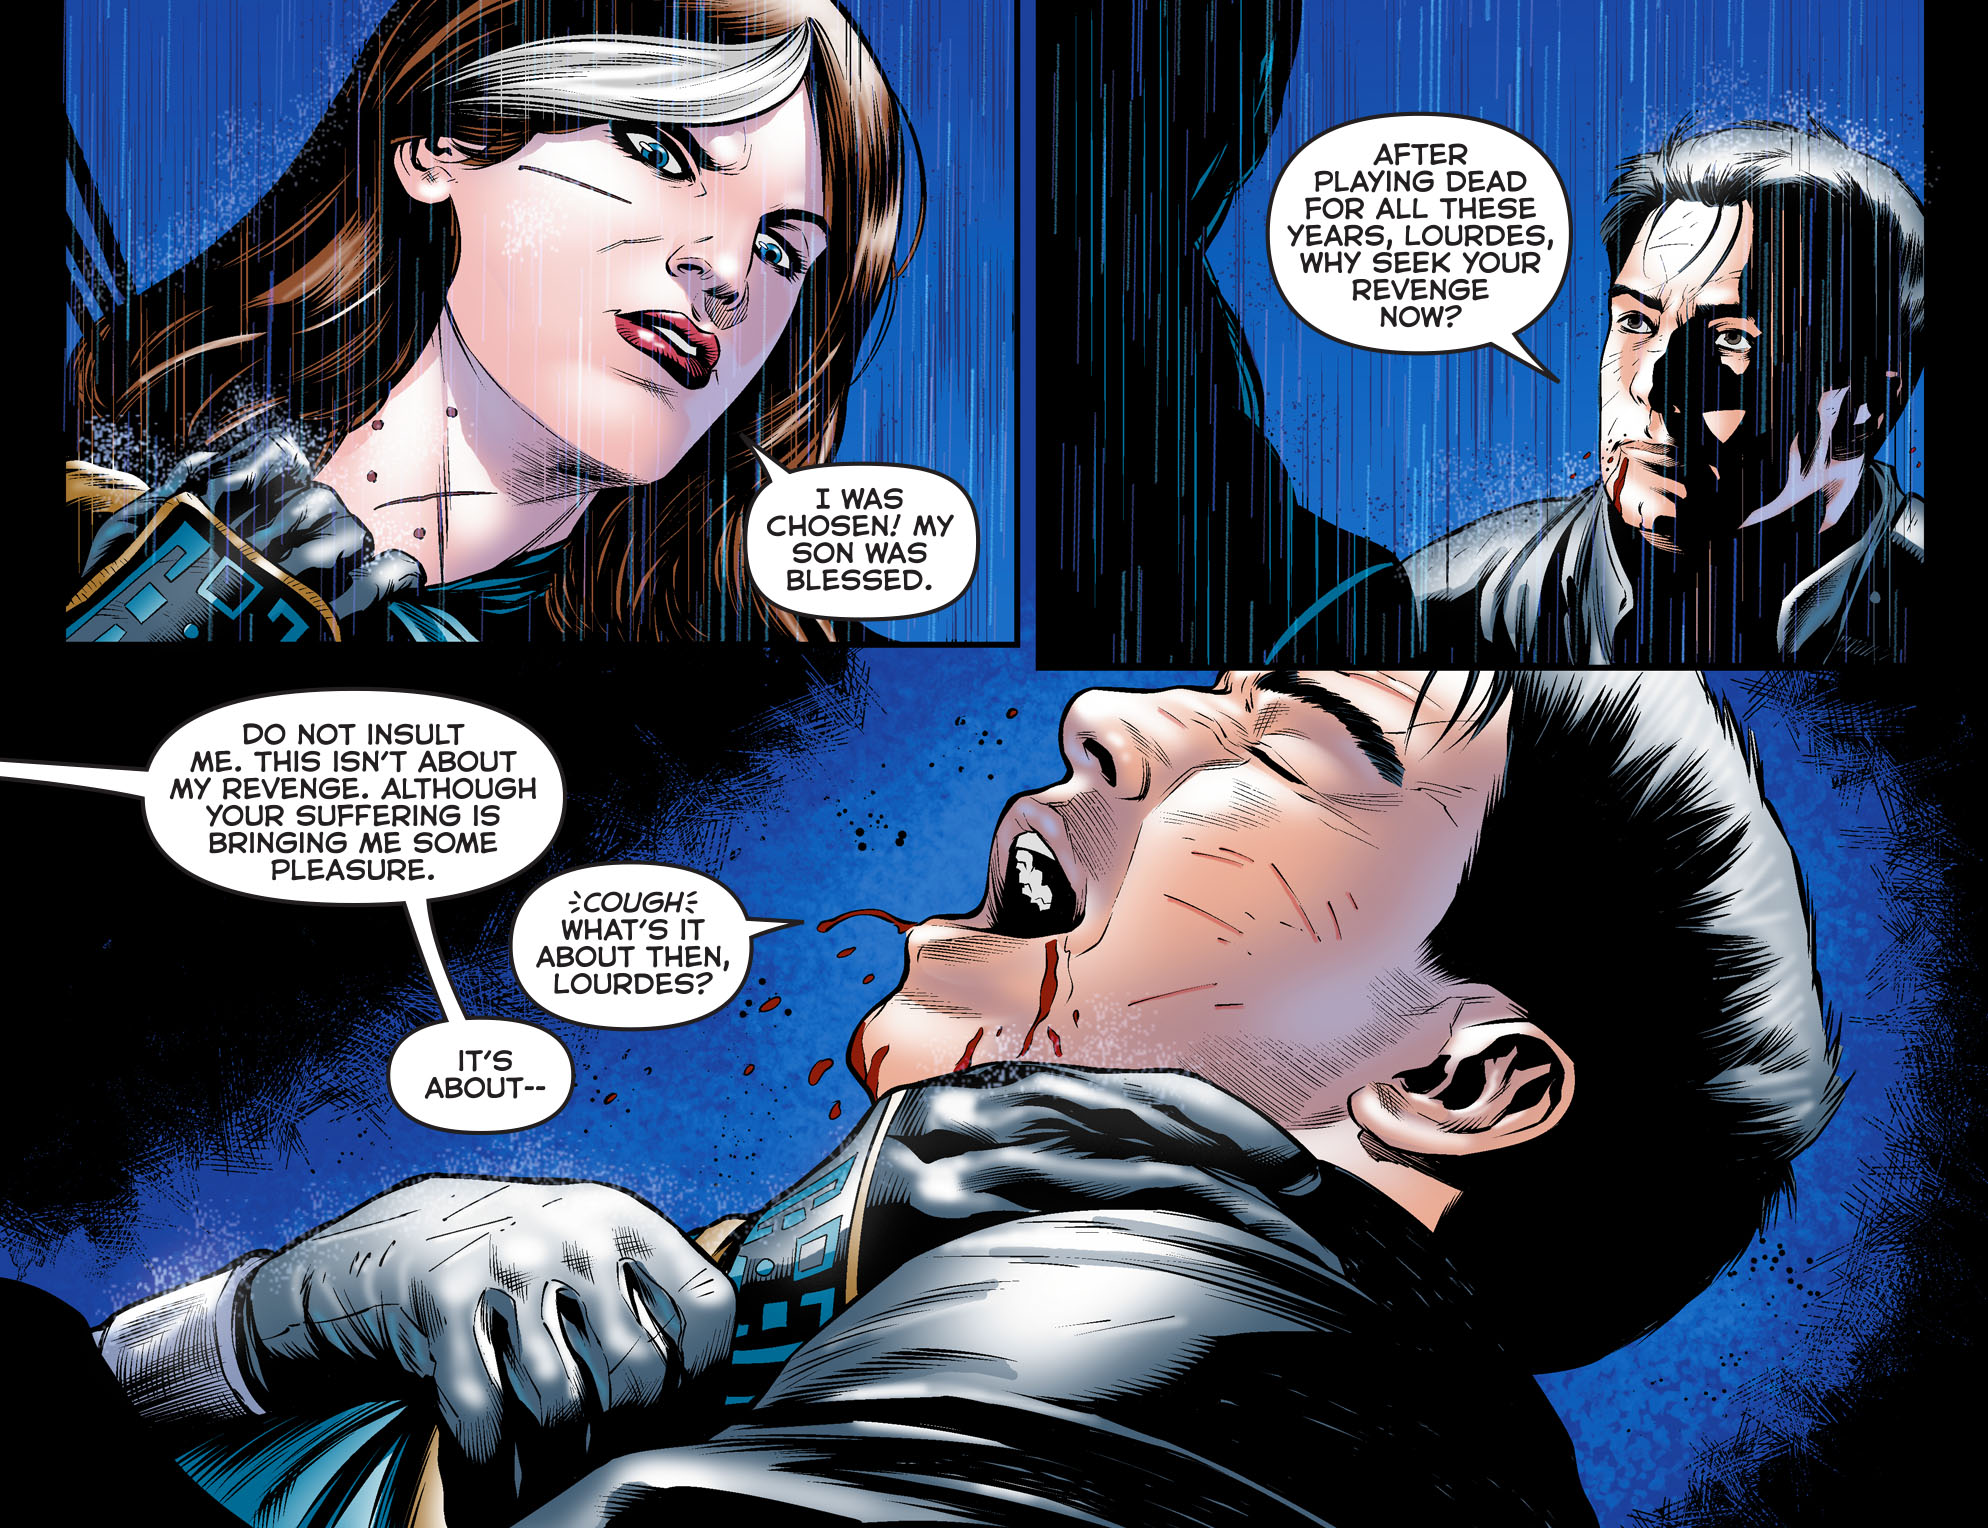 ARROW: DARK ARCHER Chapter 6 panel 4